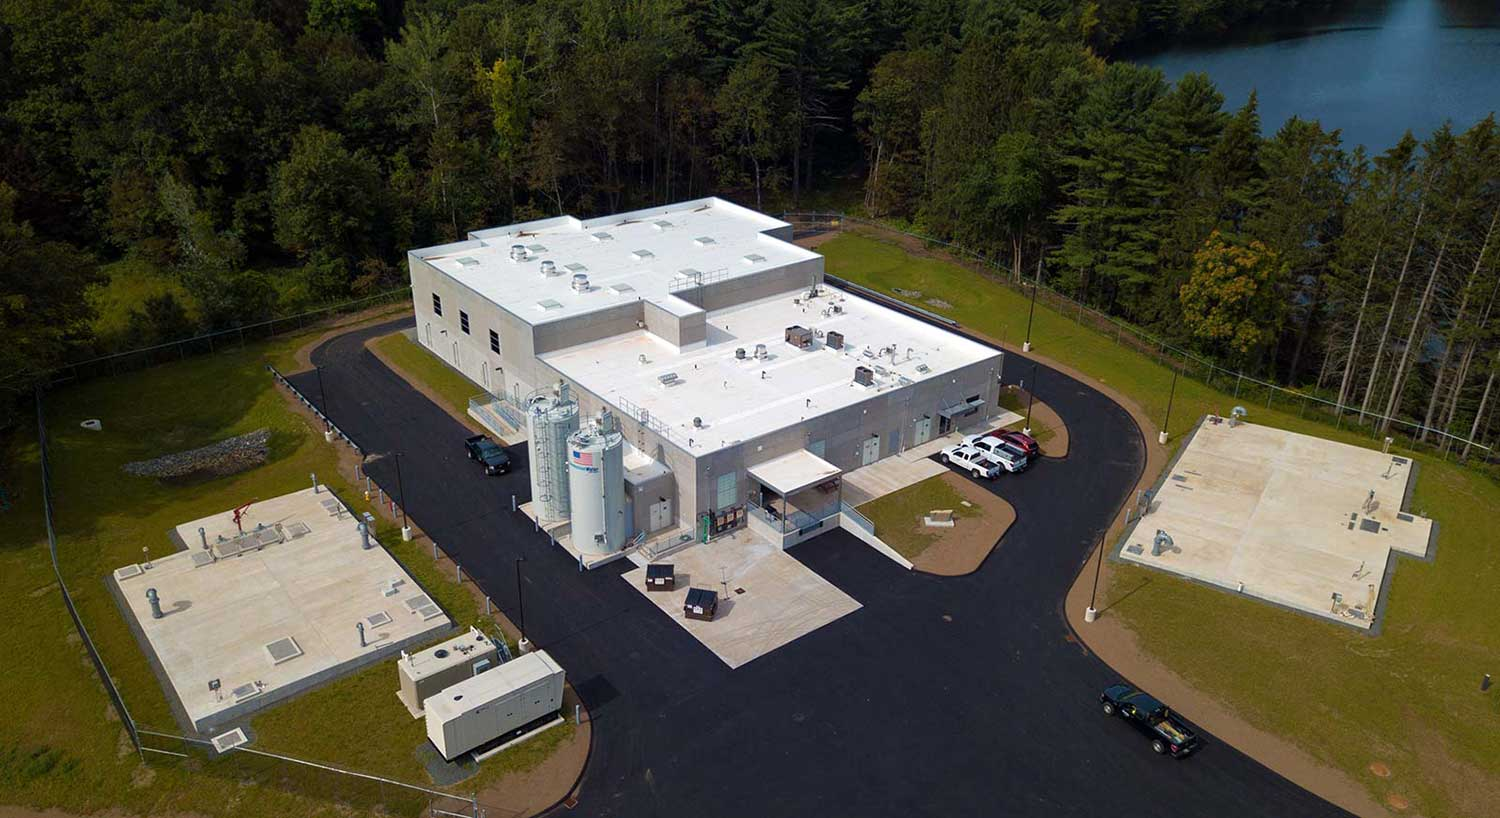 An industrial plant built by commercial construction company R.H. White Construction in Auburn, MA